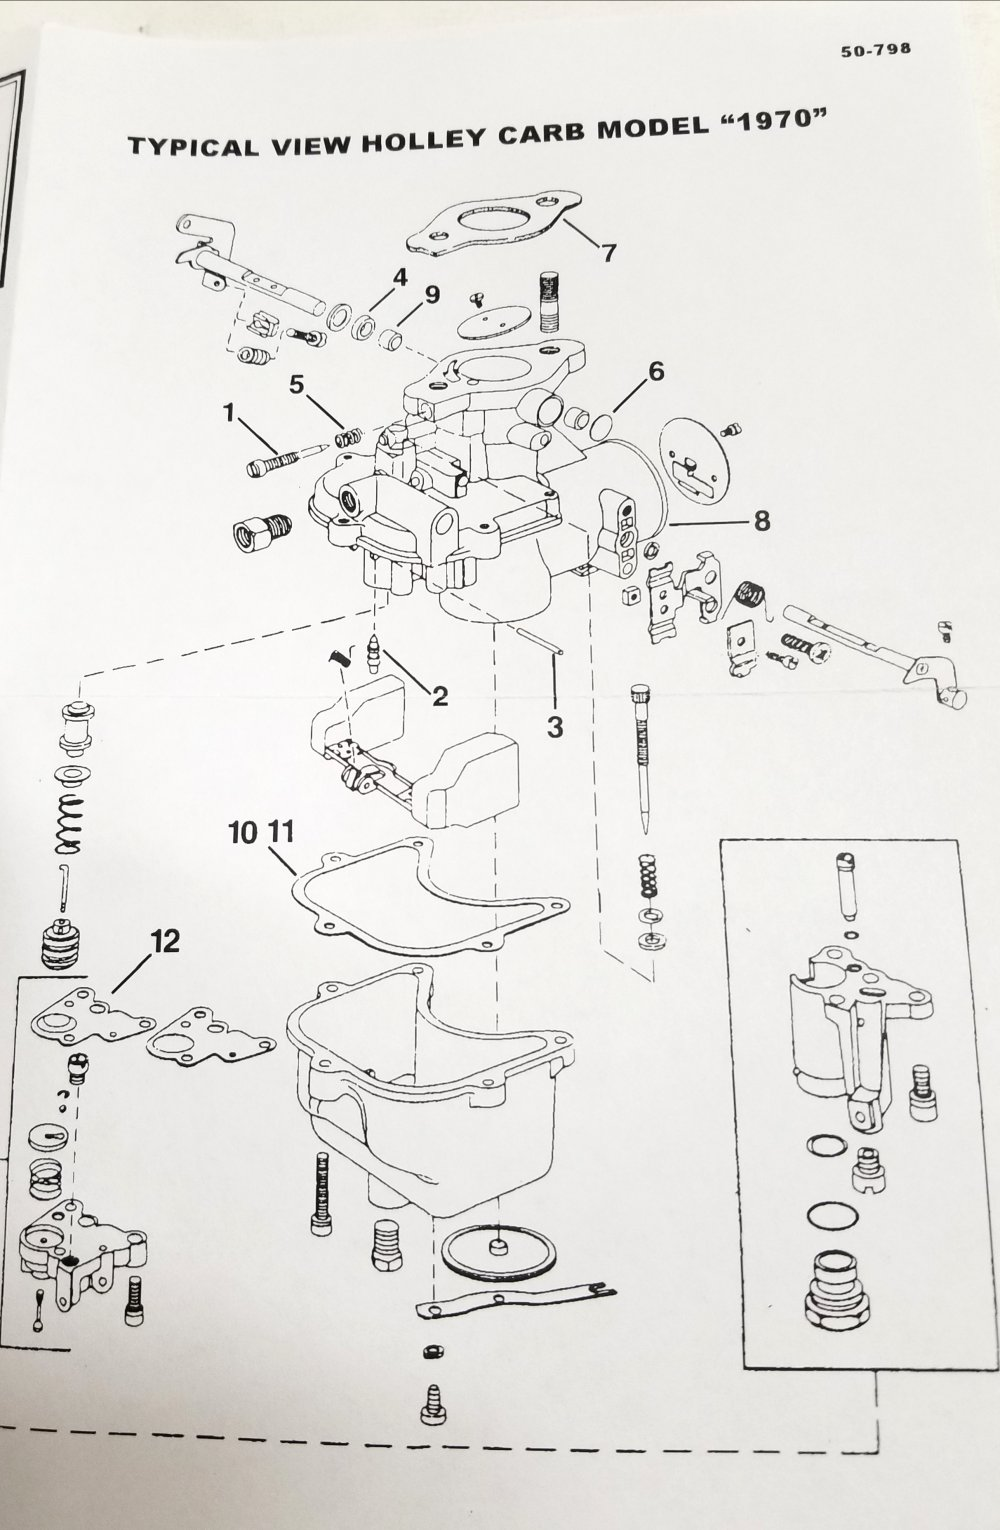 hight resolution of r3655a carburetor info page holley carburetor diagrams model 6520 holley carburetor diagram